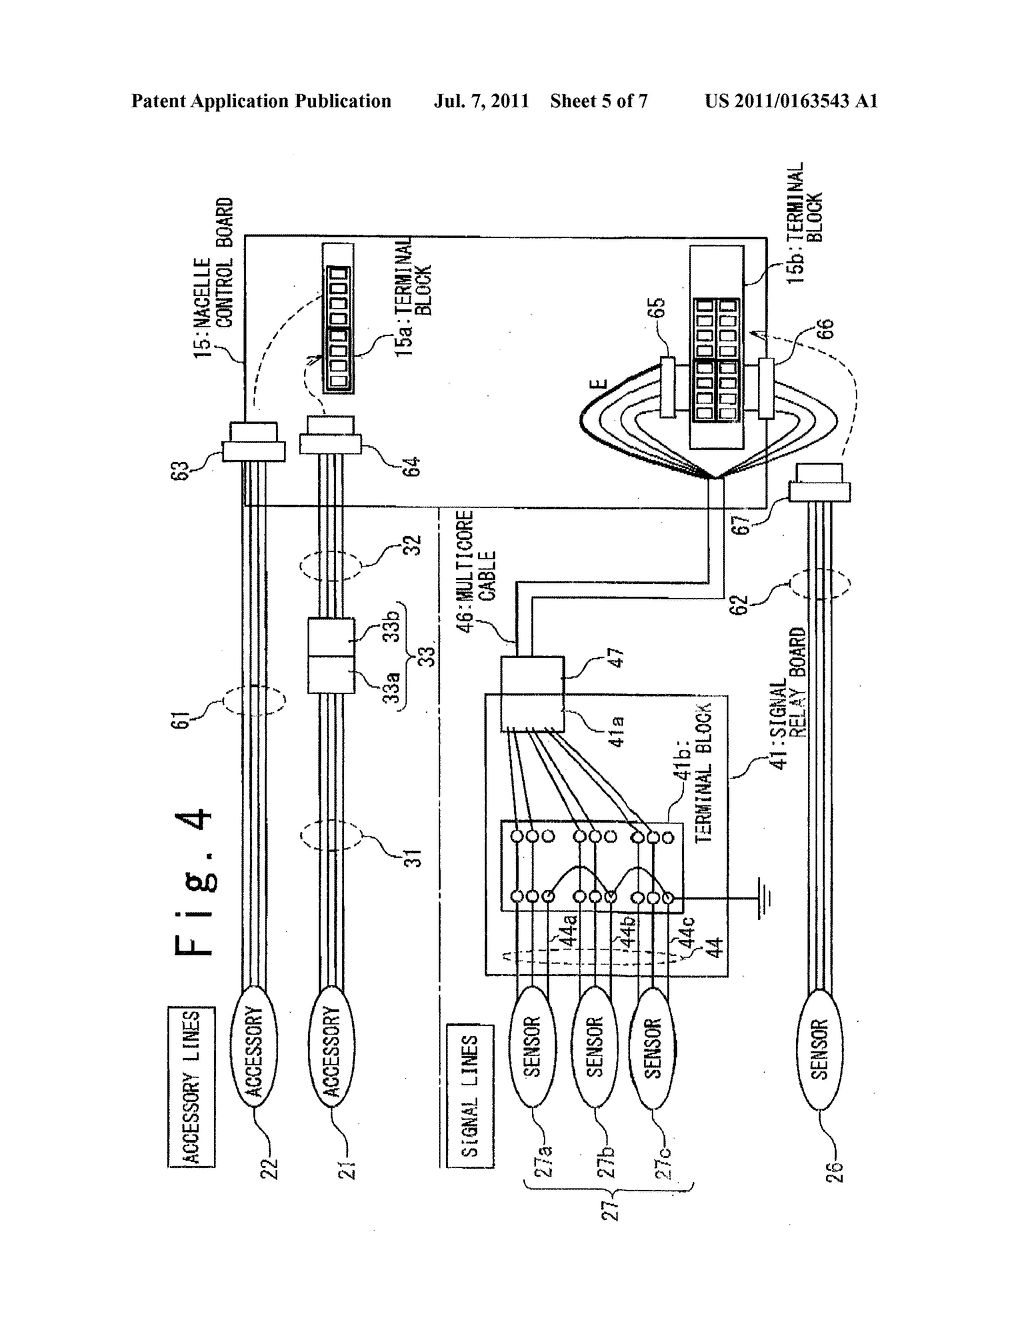 Wind Turbine Wiring Diagram Library Additionally Generac Portable Generator Signal Line In Nacelle Of Schematic And Image